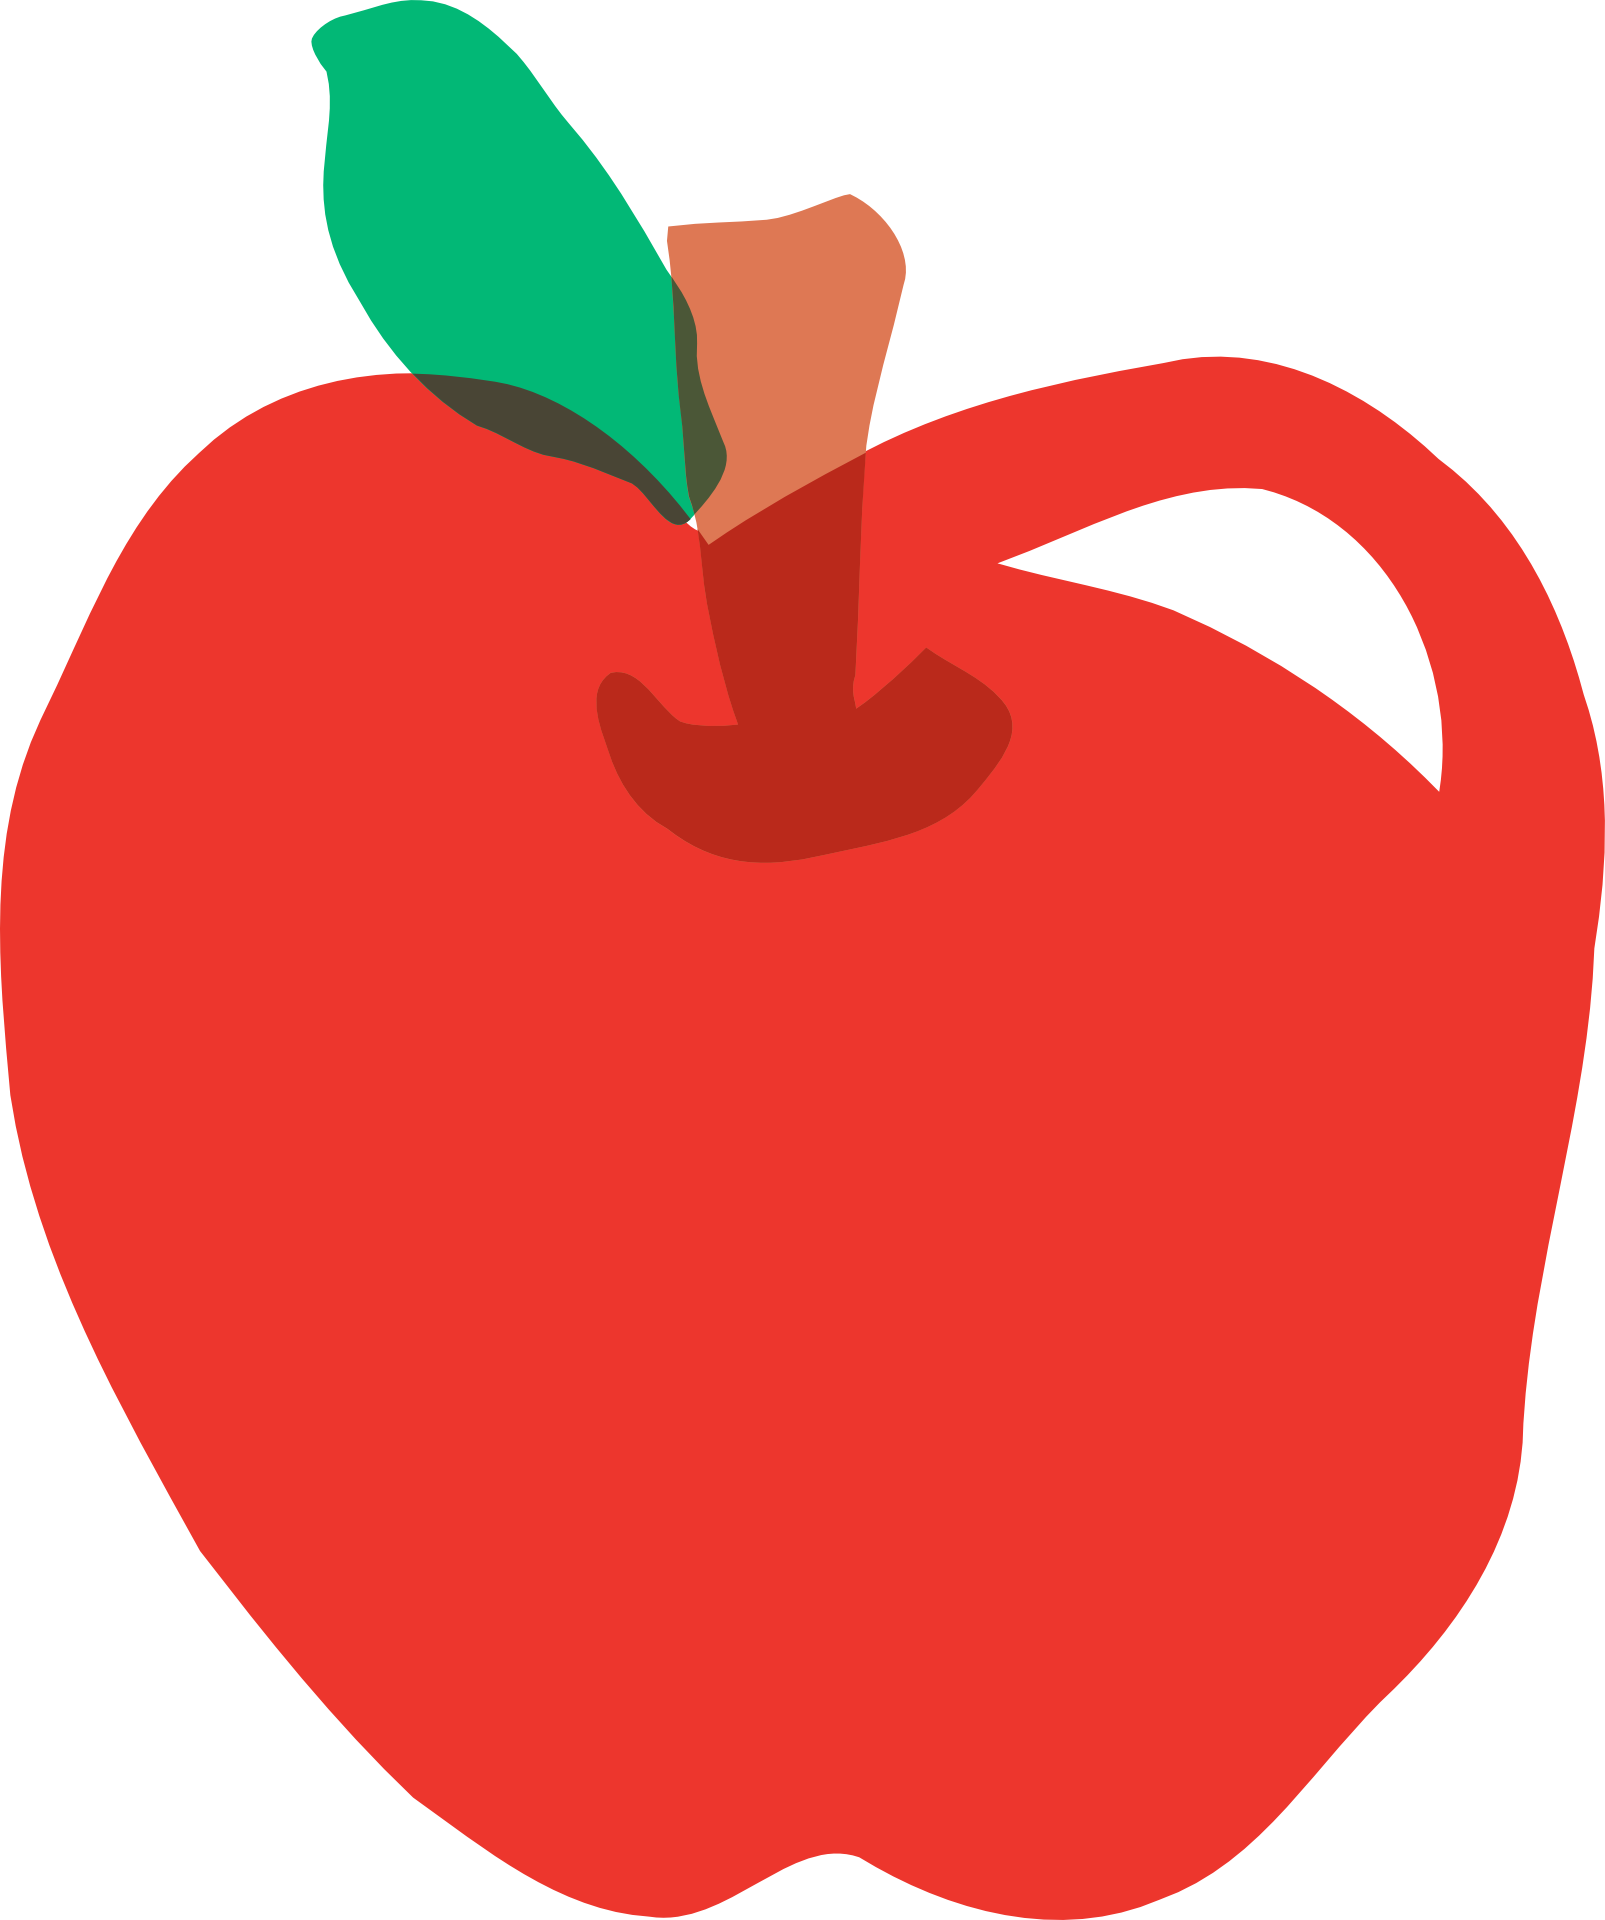 Drawing apple red. Of with stem and